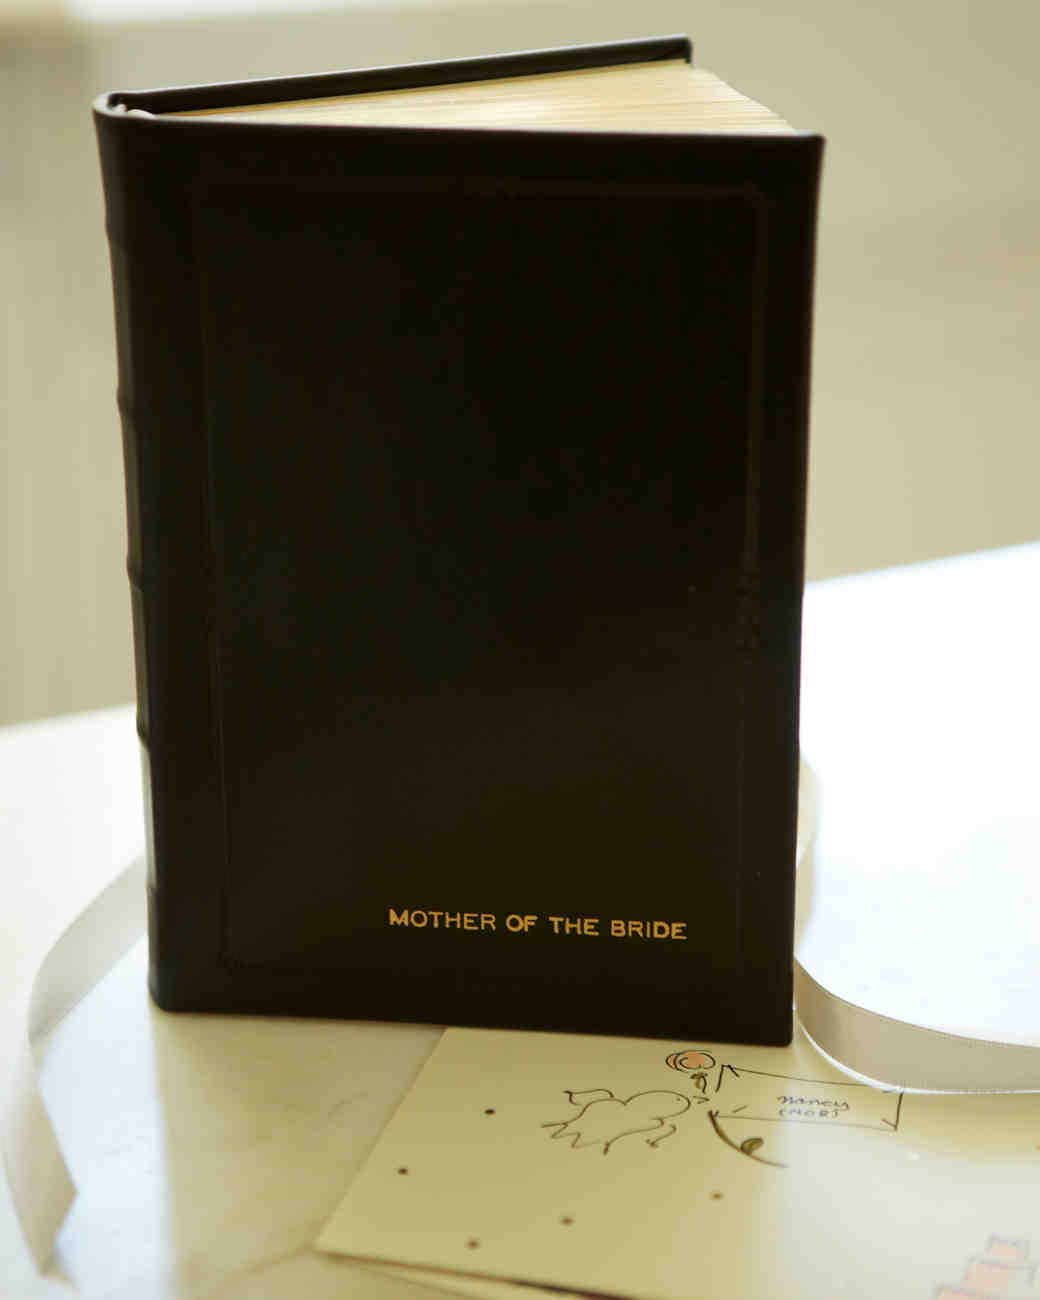 mother-of-the-bride-book-d109296.jpg